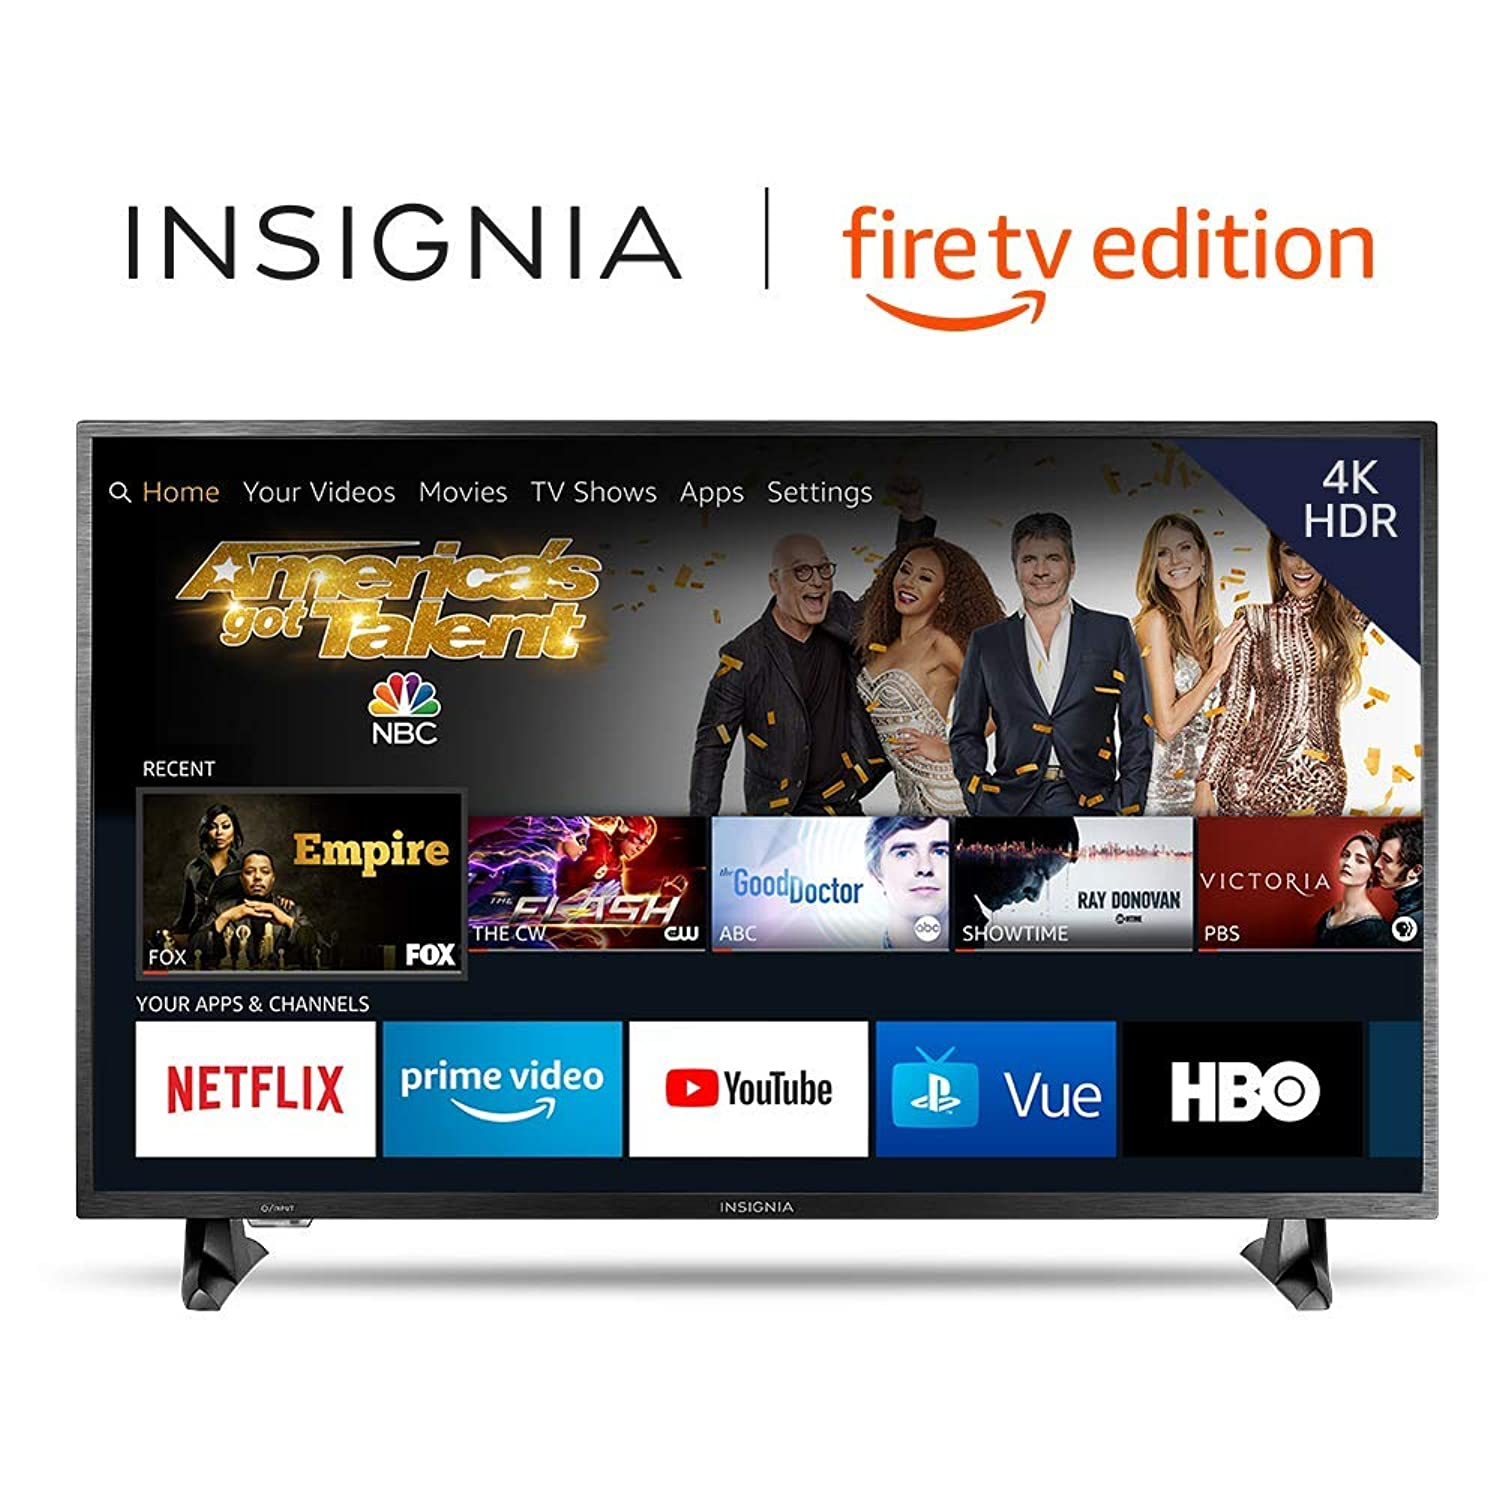 Insignia NS-50DF710NA19 50-inch 4K Ultra HD Smart LED TV HDR - Fire TV Edition zbczyt6638122